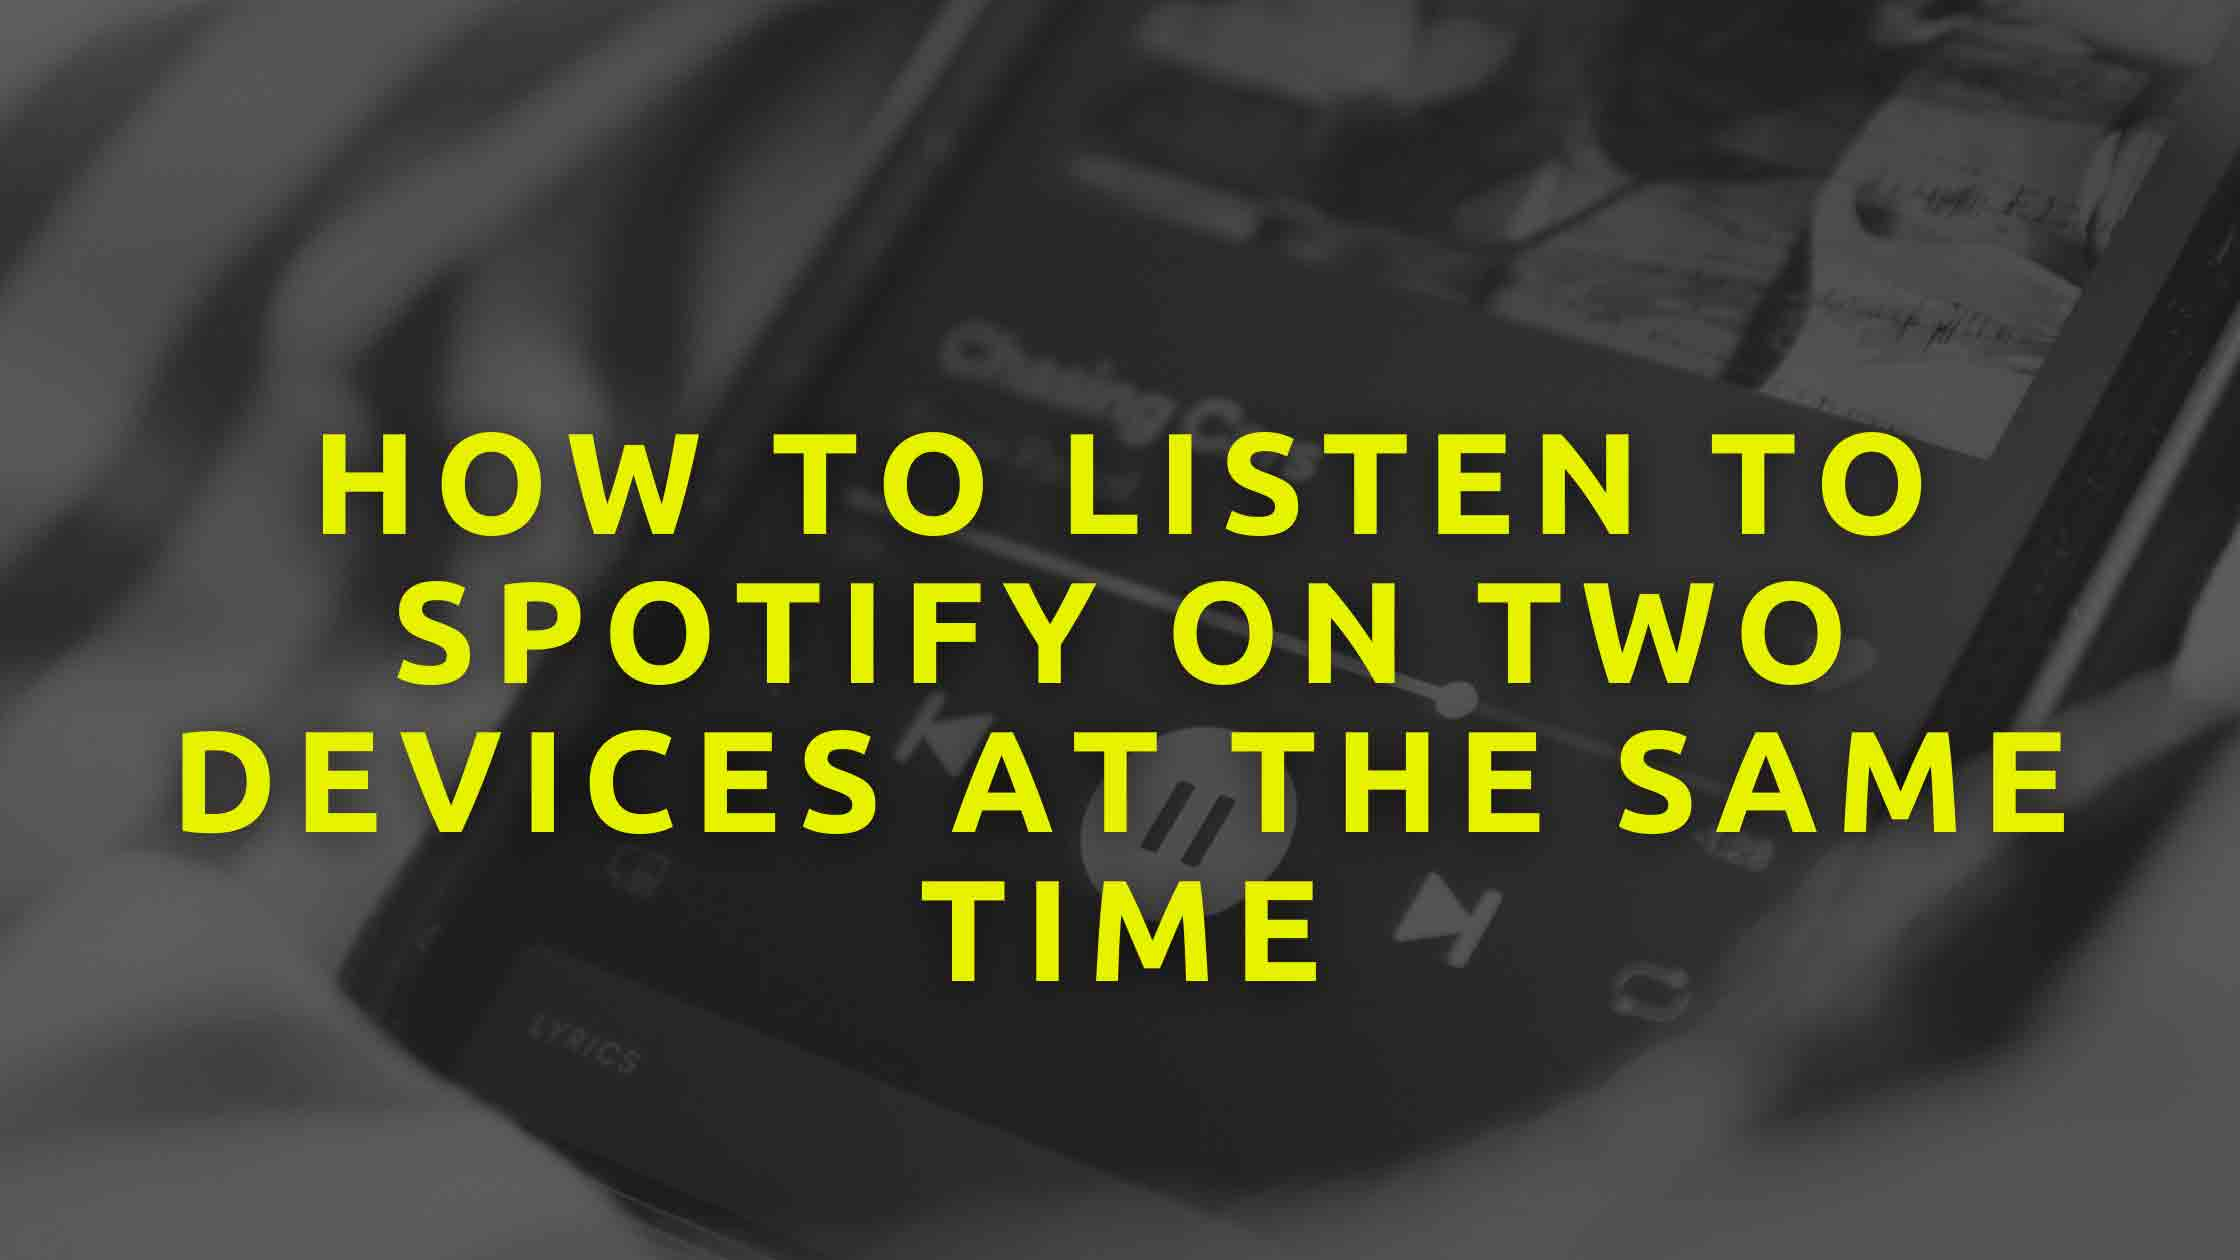 How-To-Listen-To-Spotify-On-Two-Devices-At-The-Same-Time